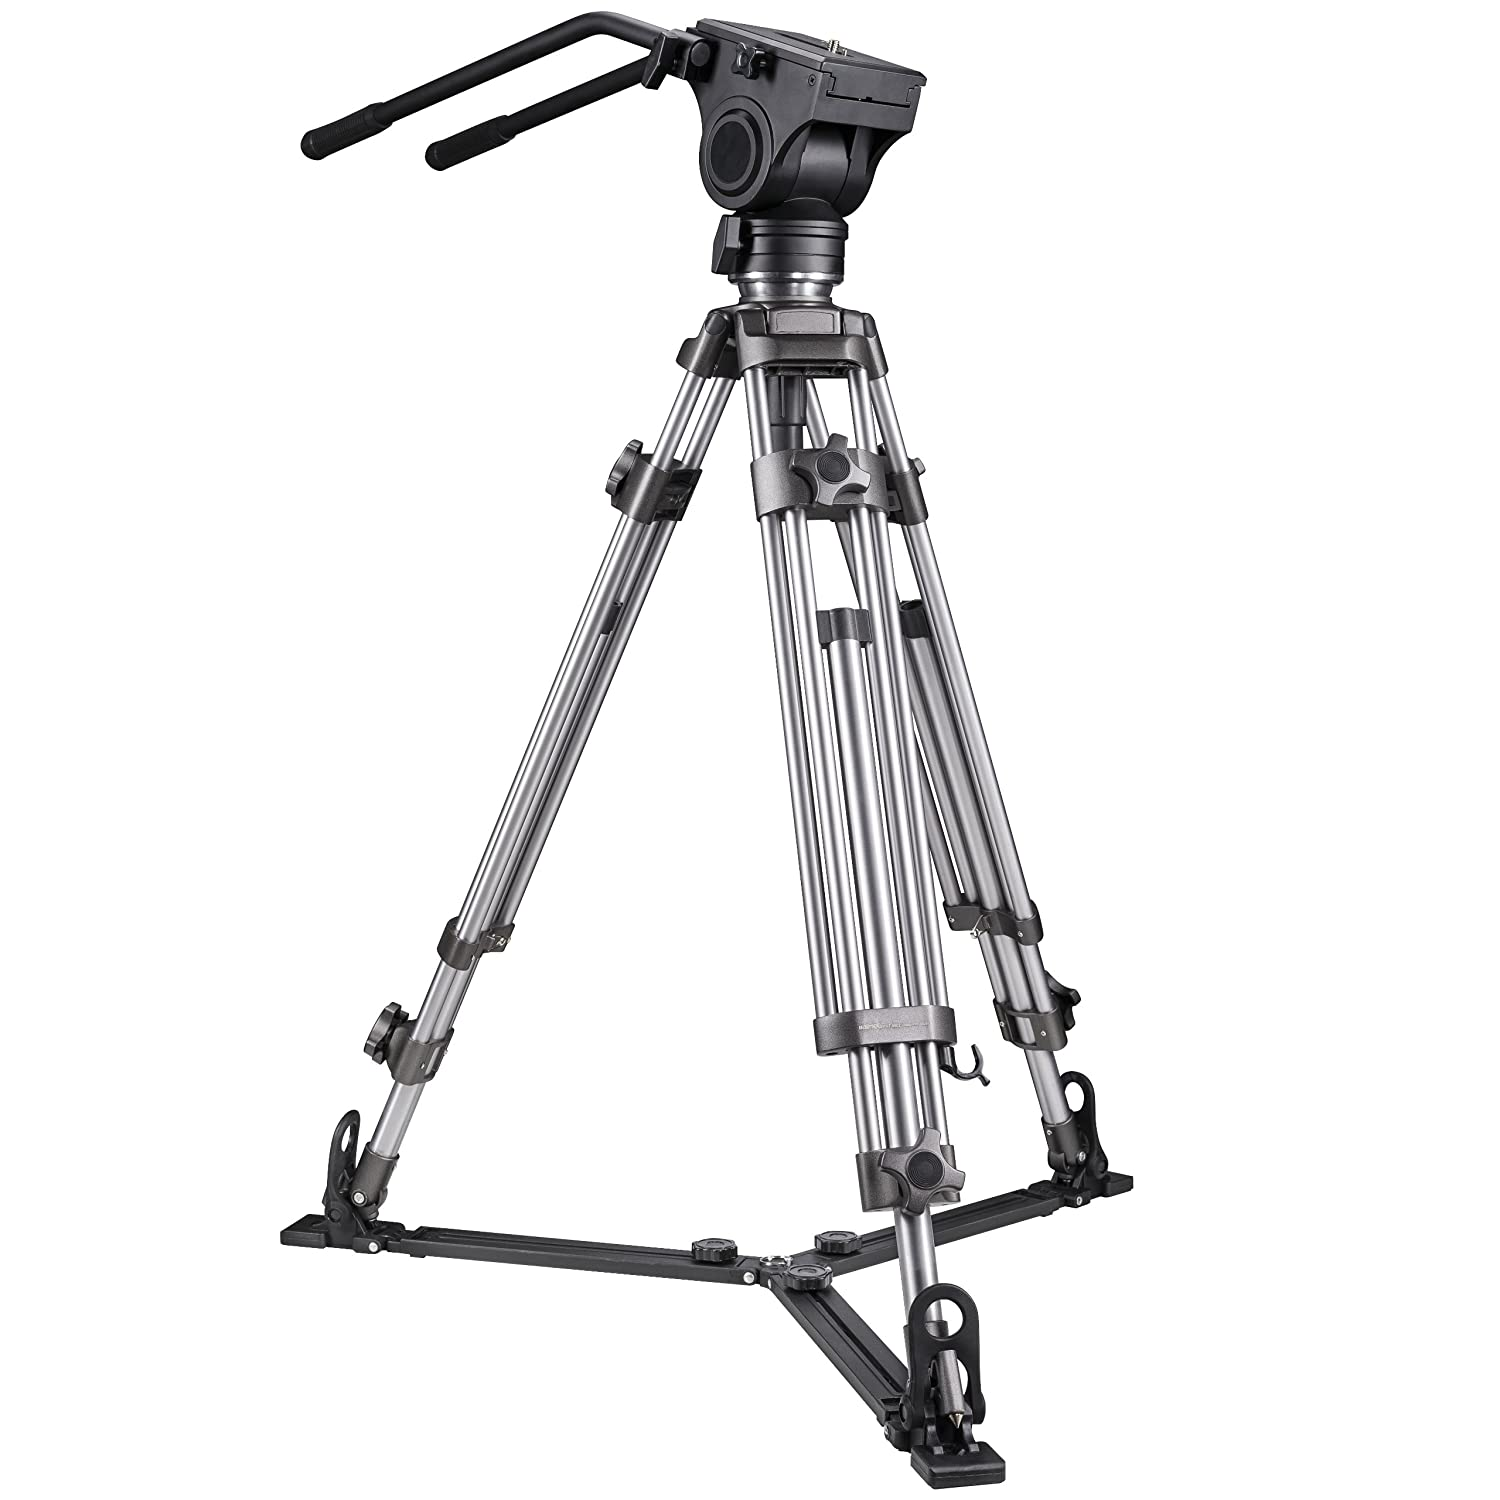 Walimex Pro Ft 9902 Video Tripod Camera Photo Weifeng Portable Stand 4 Section Aluminium Legs With Brace